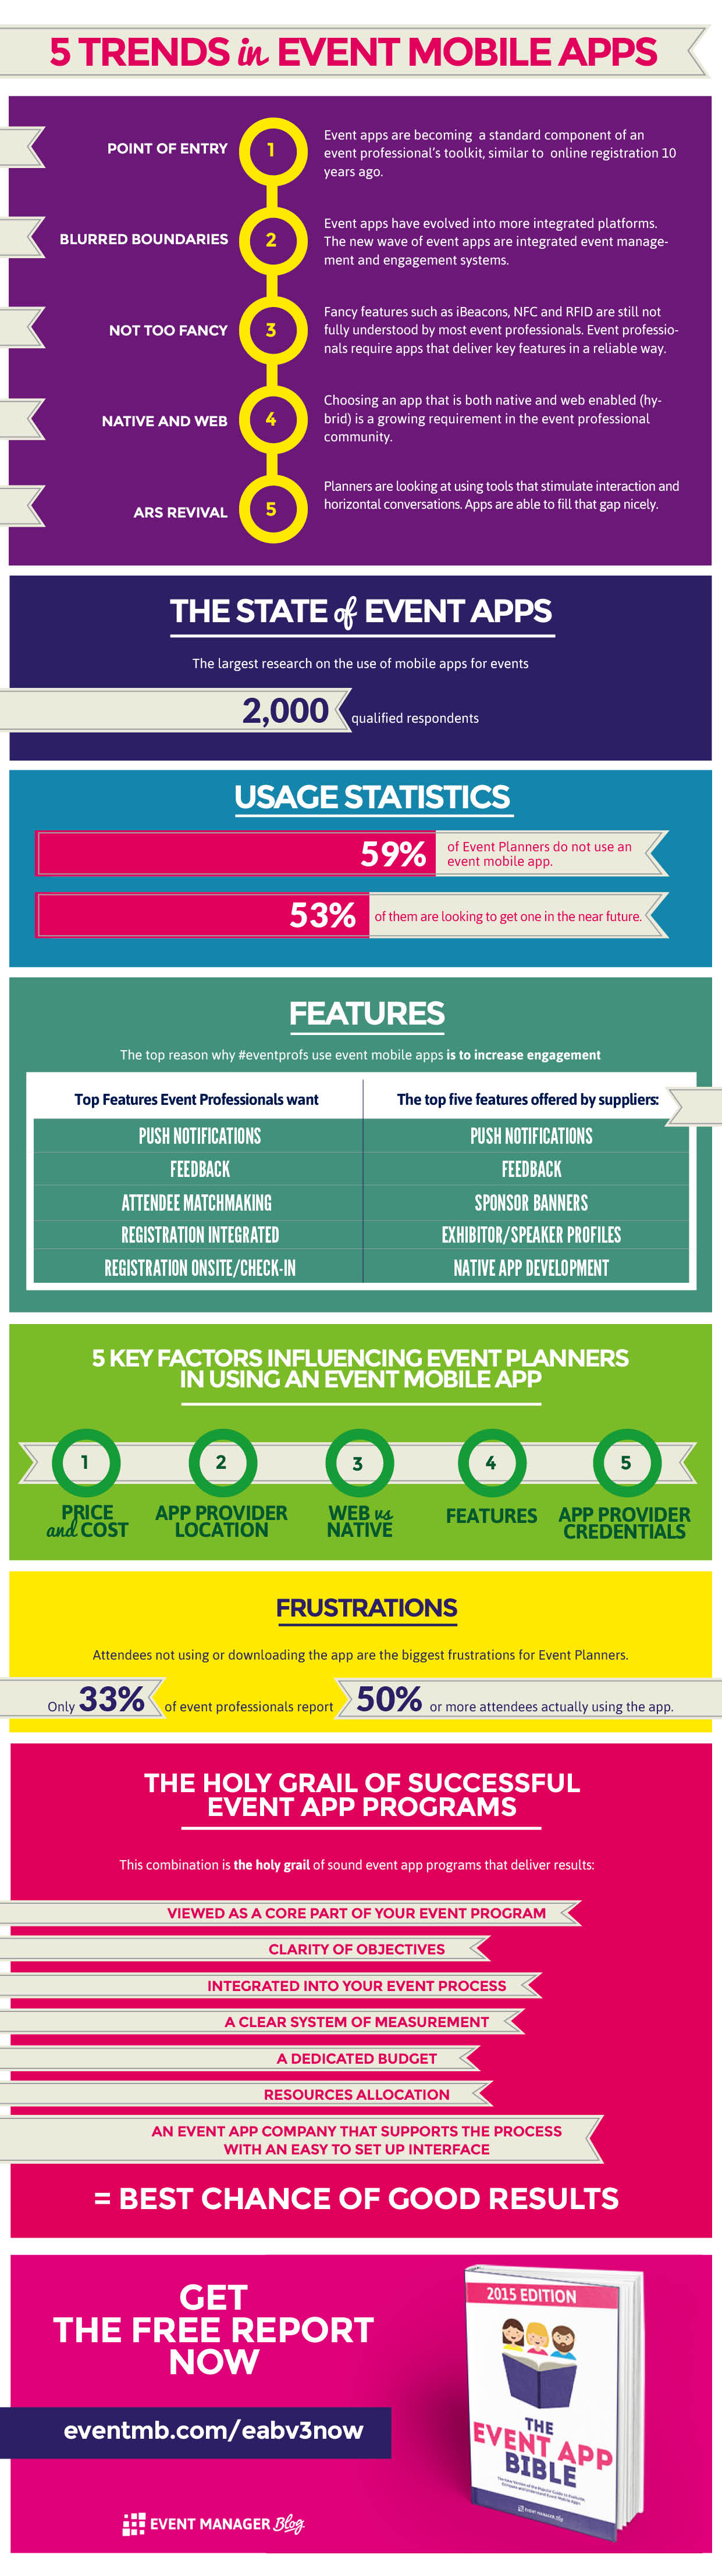 5 Trends in Event Mobile Apps [Infographic] Event app